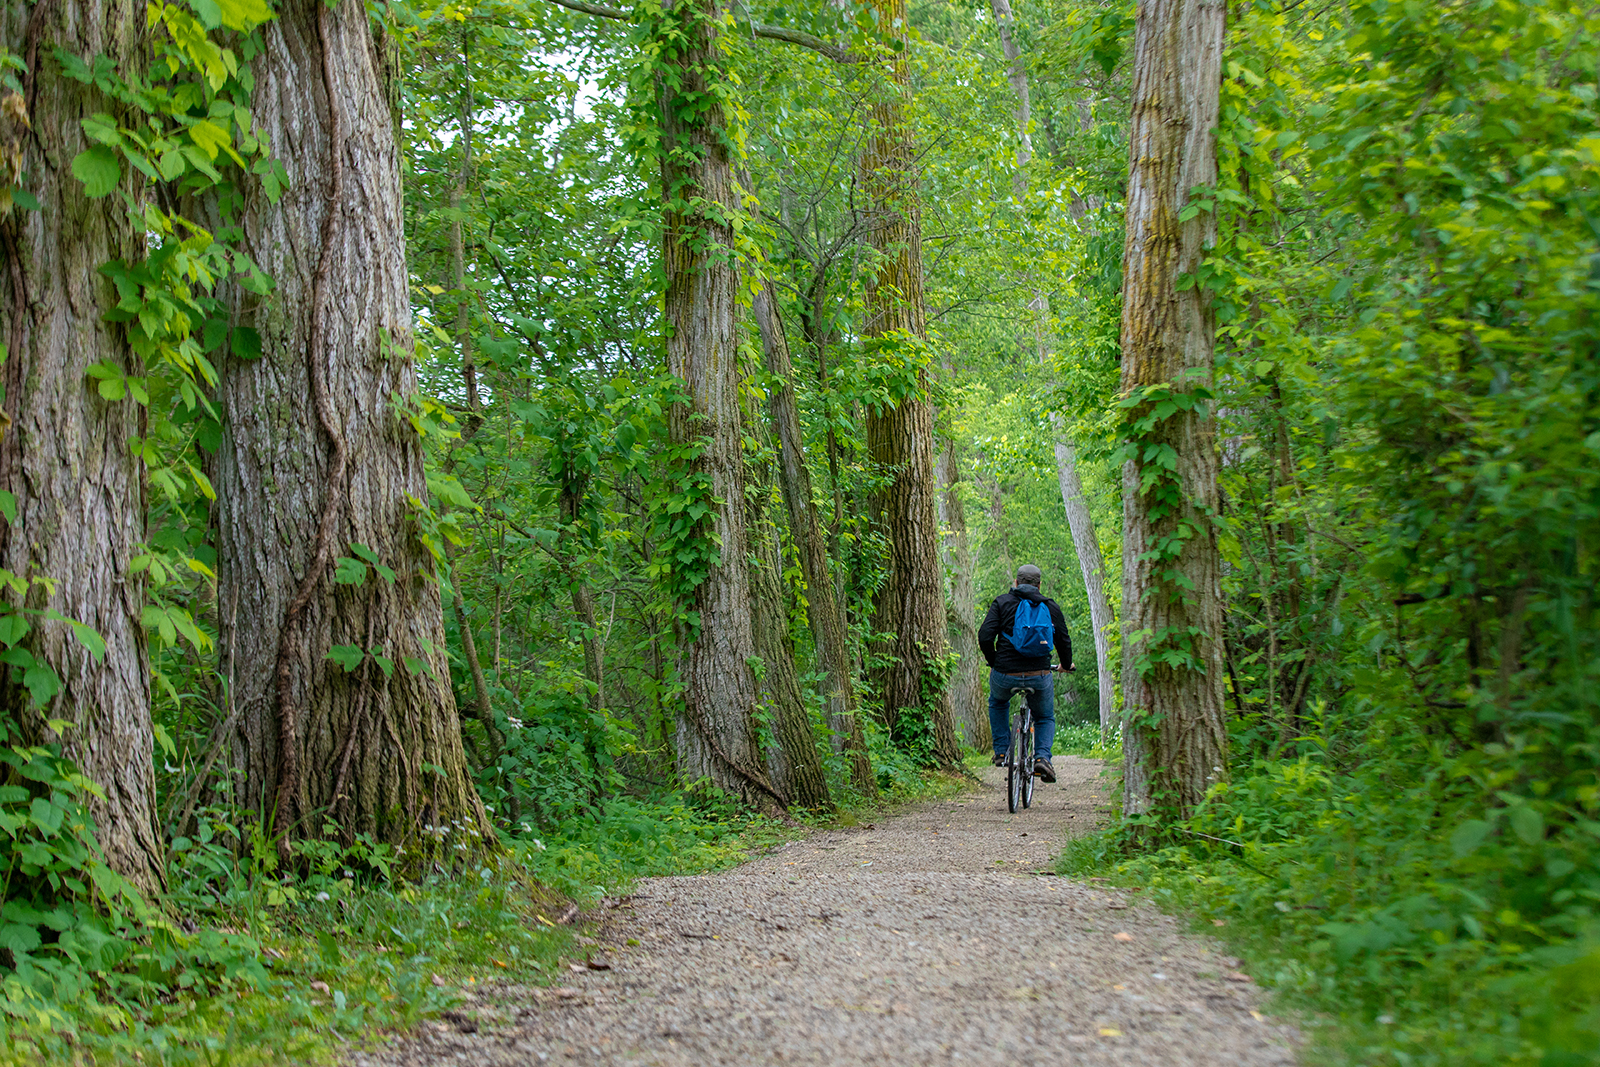 A man riding a bicycle down a trail through tall deciduous trees